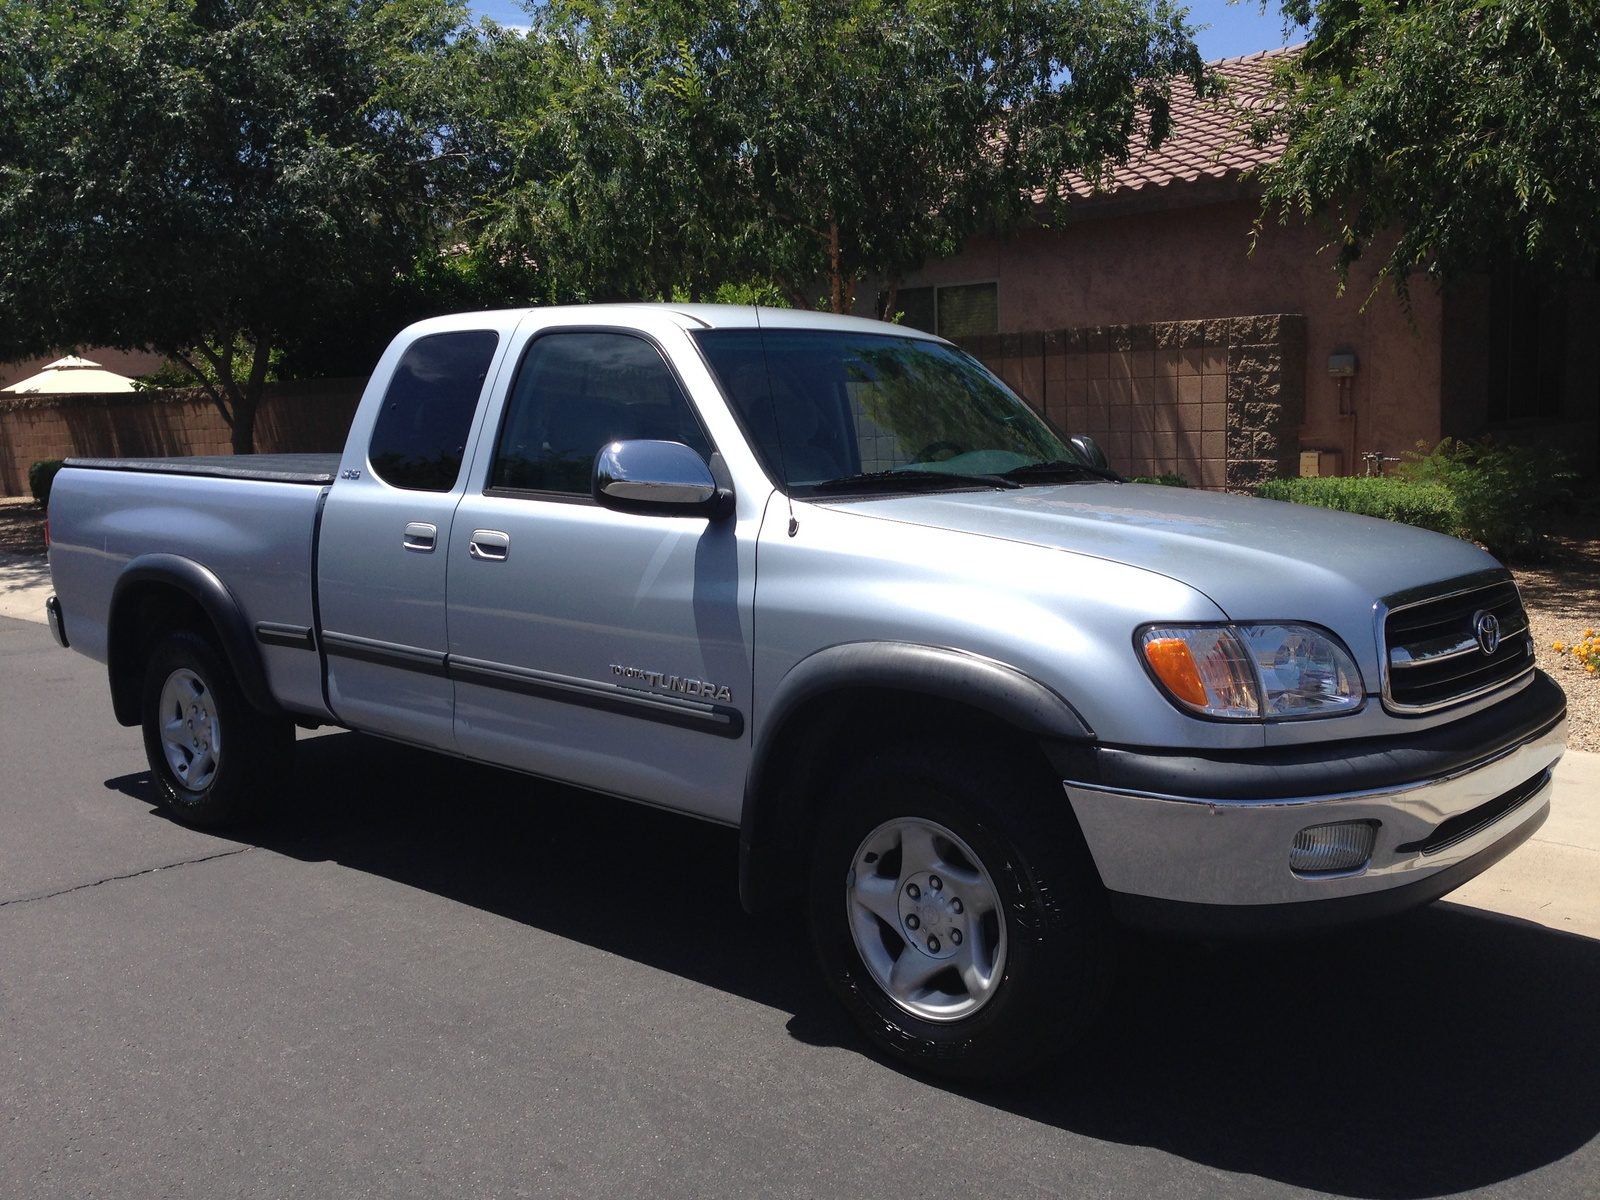 2007 Chevrolet Silverado 1500 Extended Cab >> 2000 Toyota Tundra - Pictures - CarGurus